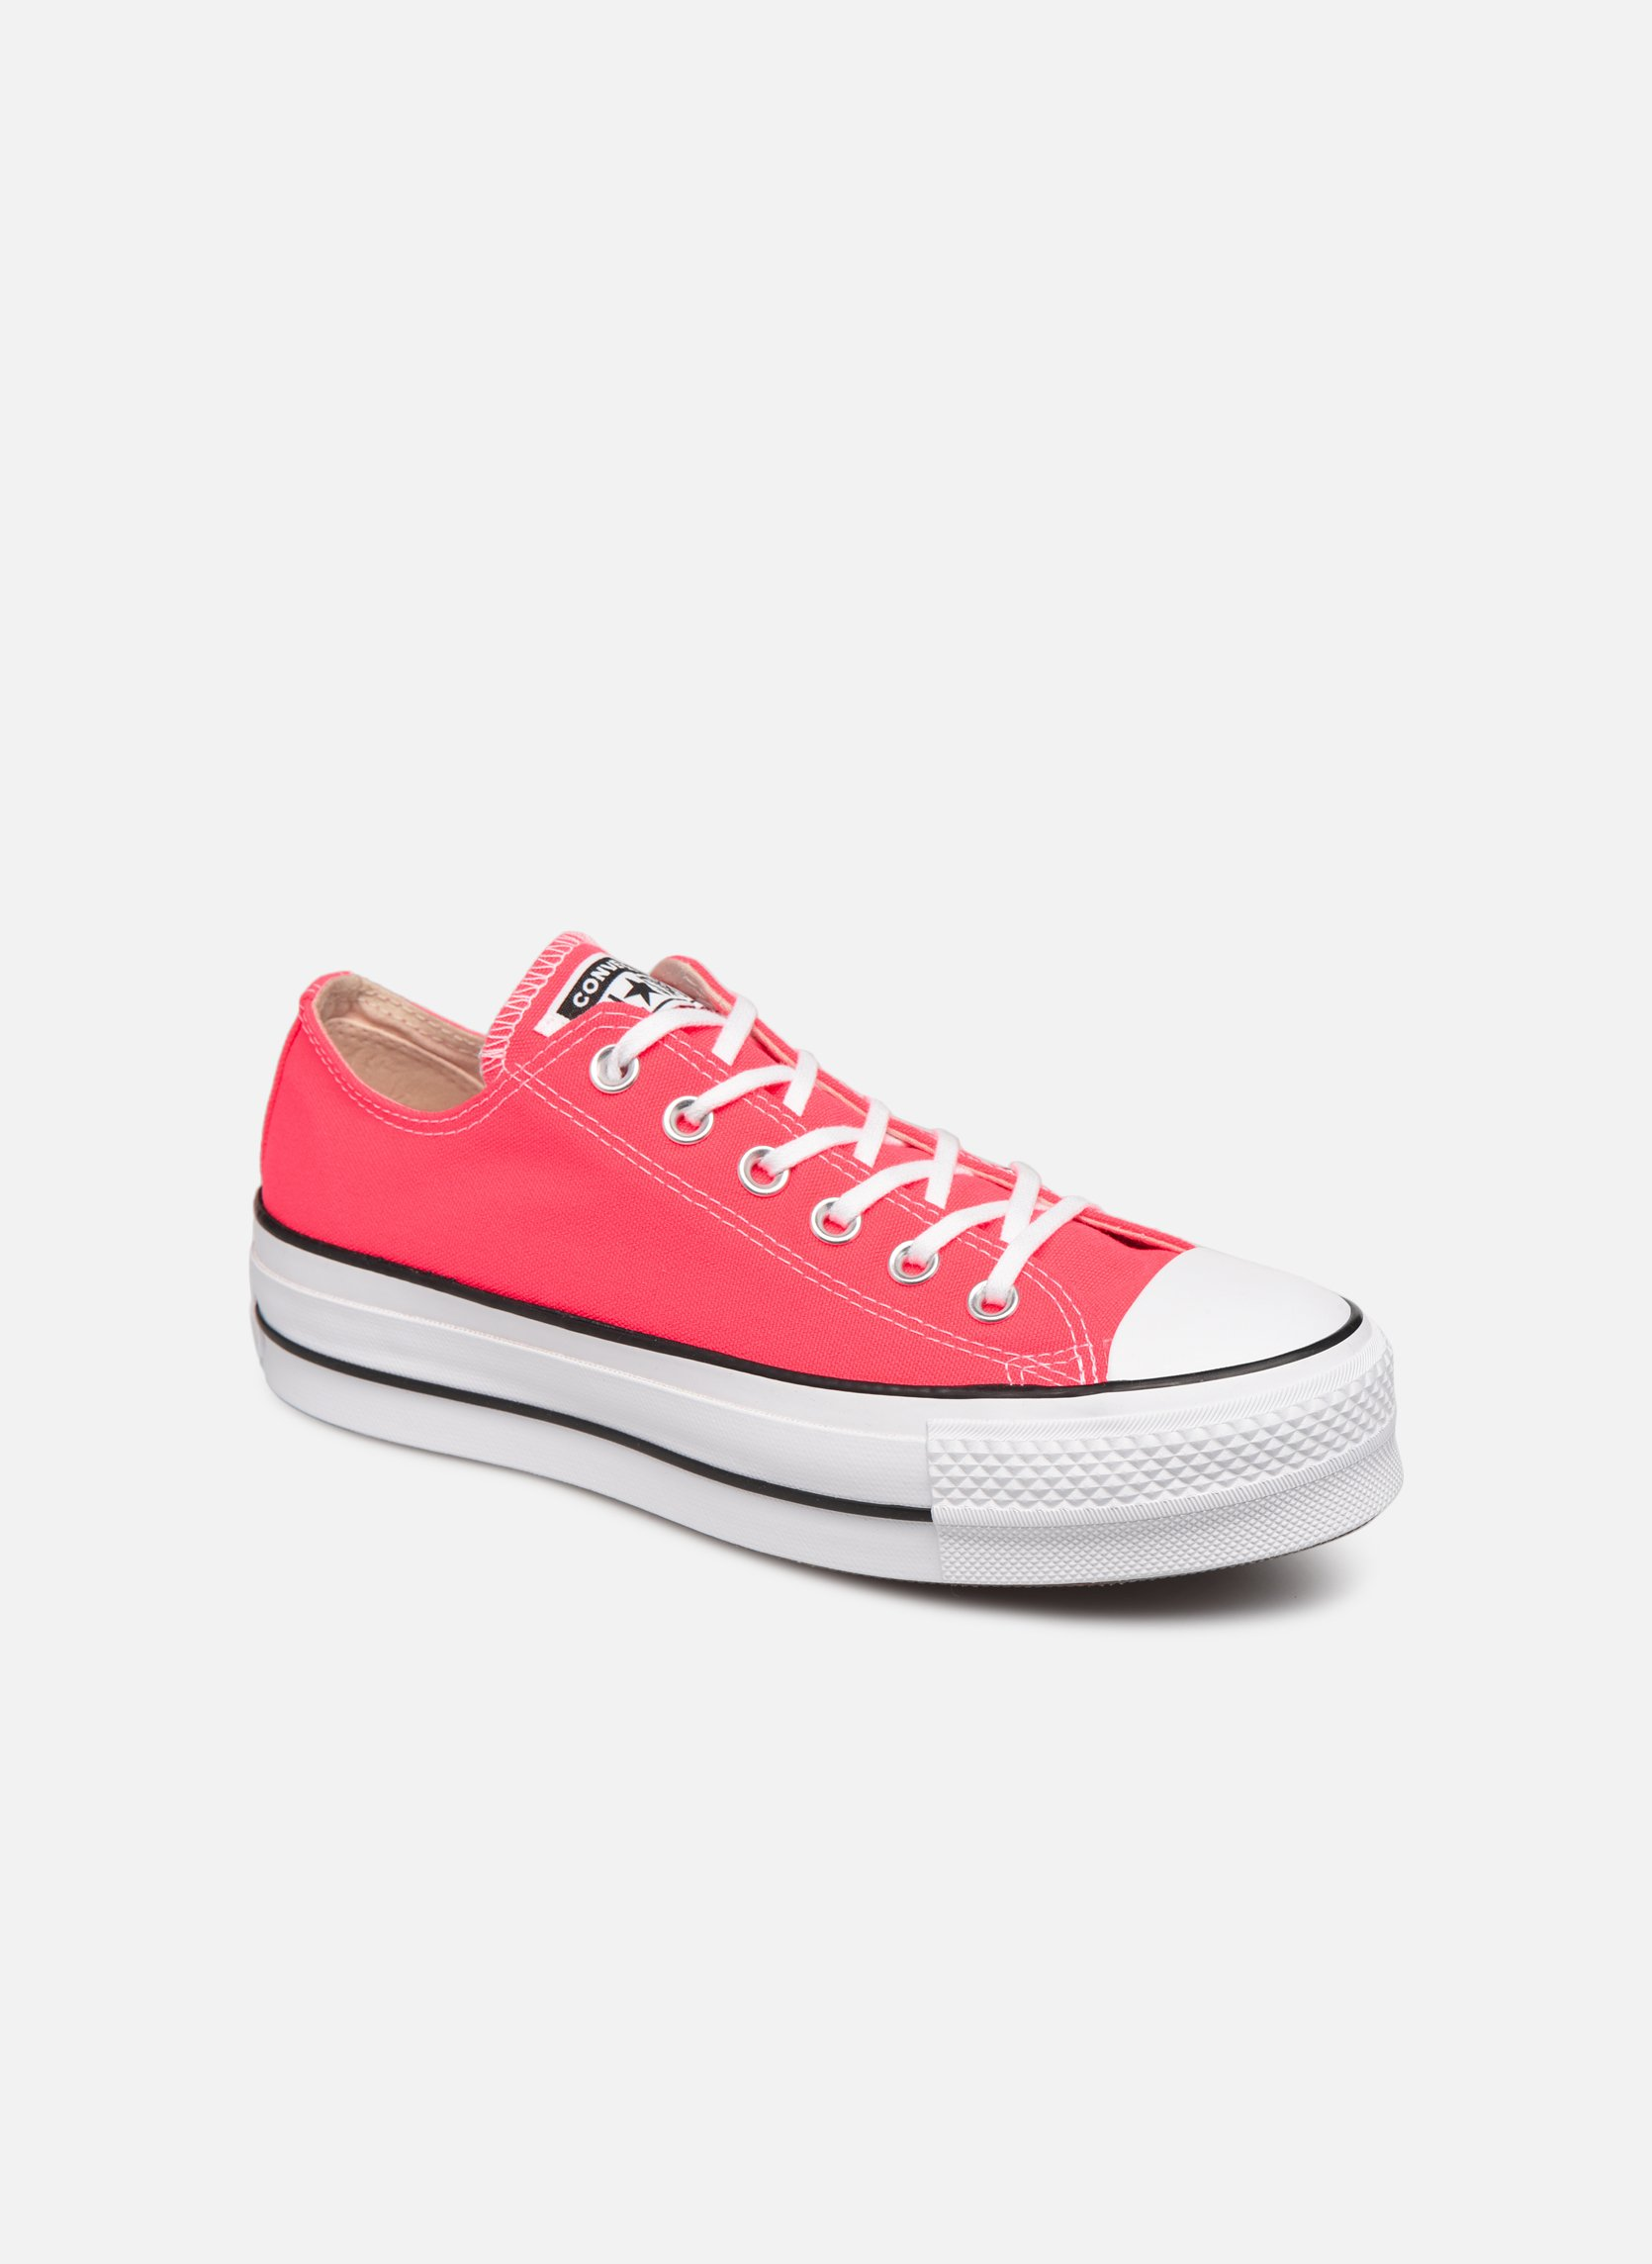 Sneakers Chuck Taylor All Star Clean Lift Seasonal Color Extension Ox by Converse